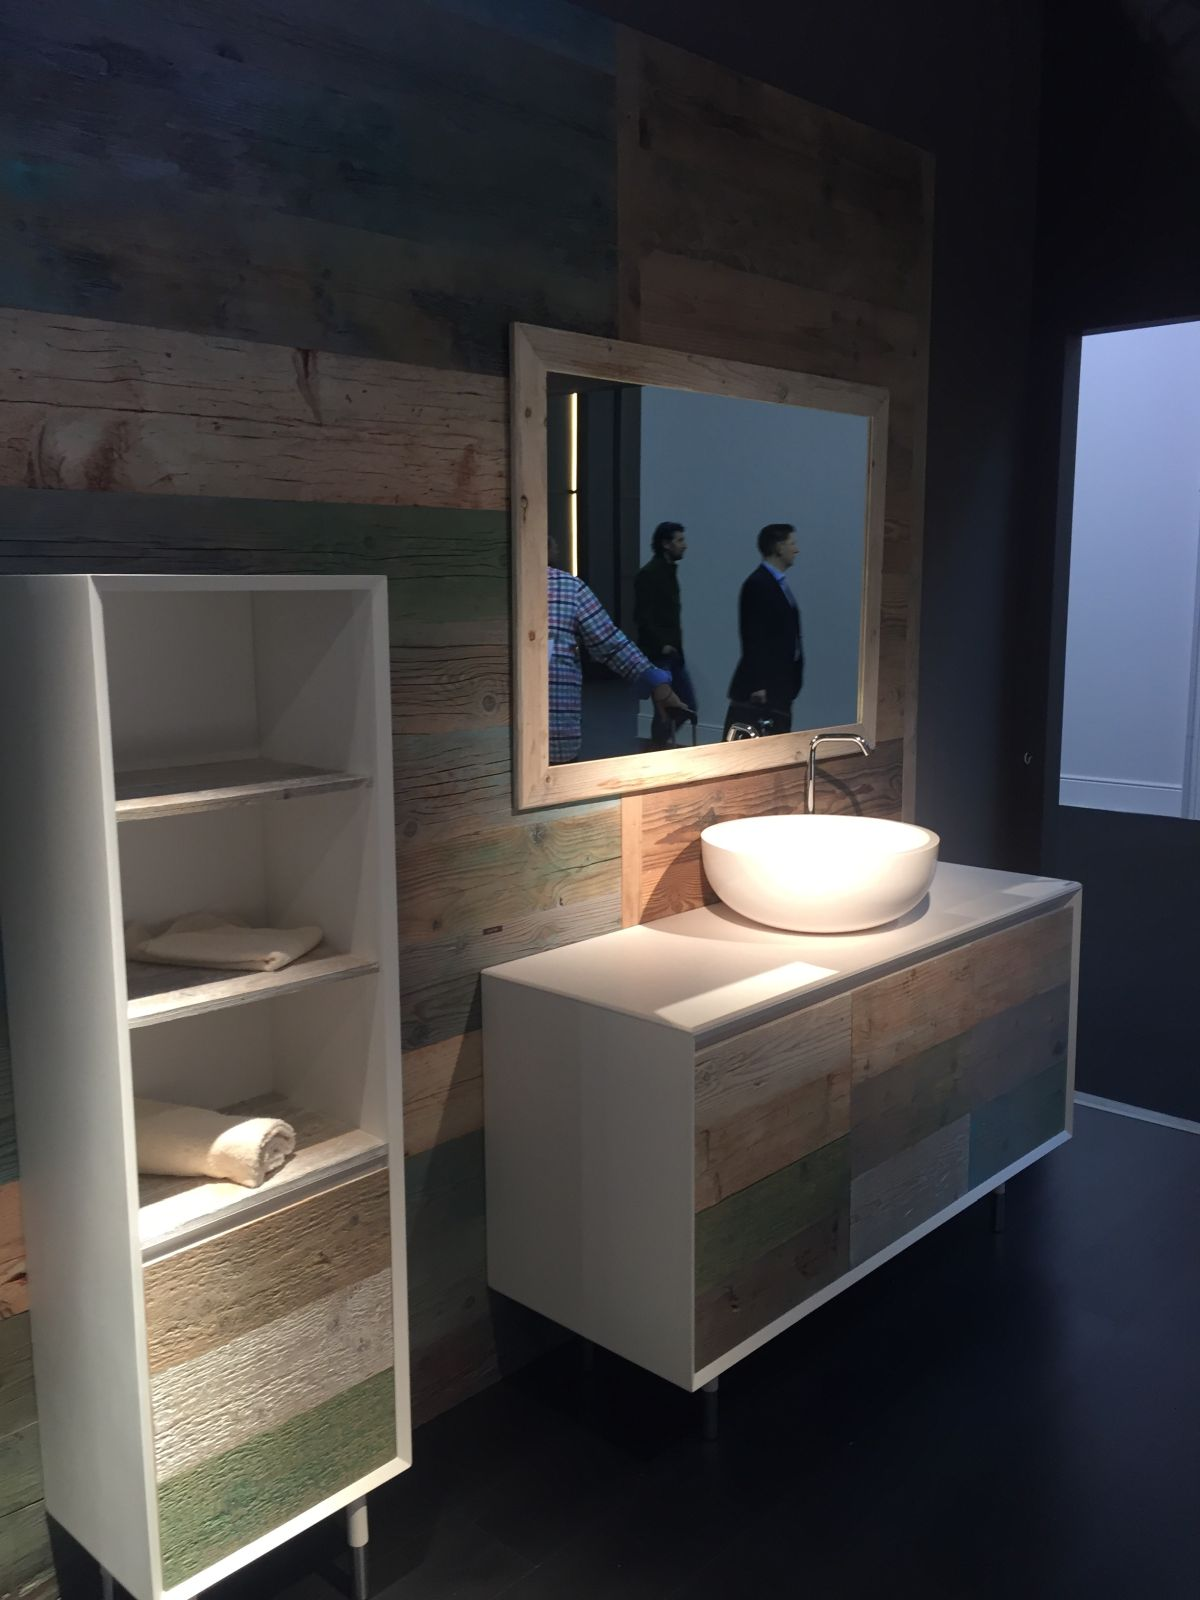 Reclaimed wood turned into luxury wood for bathroom furniture